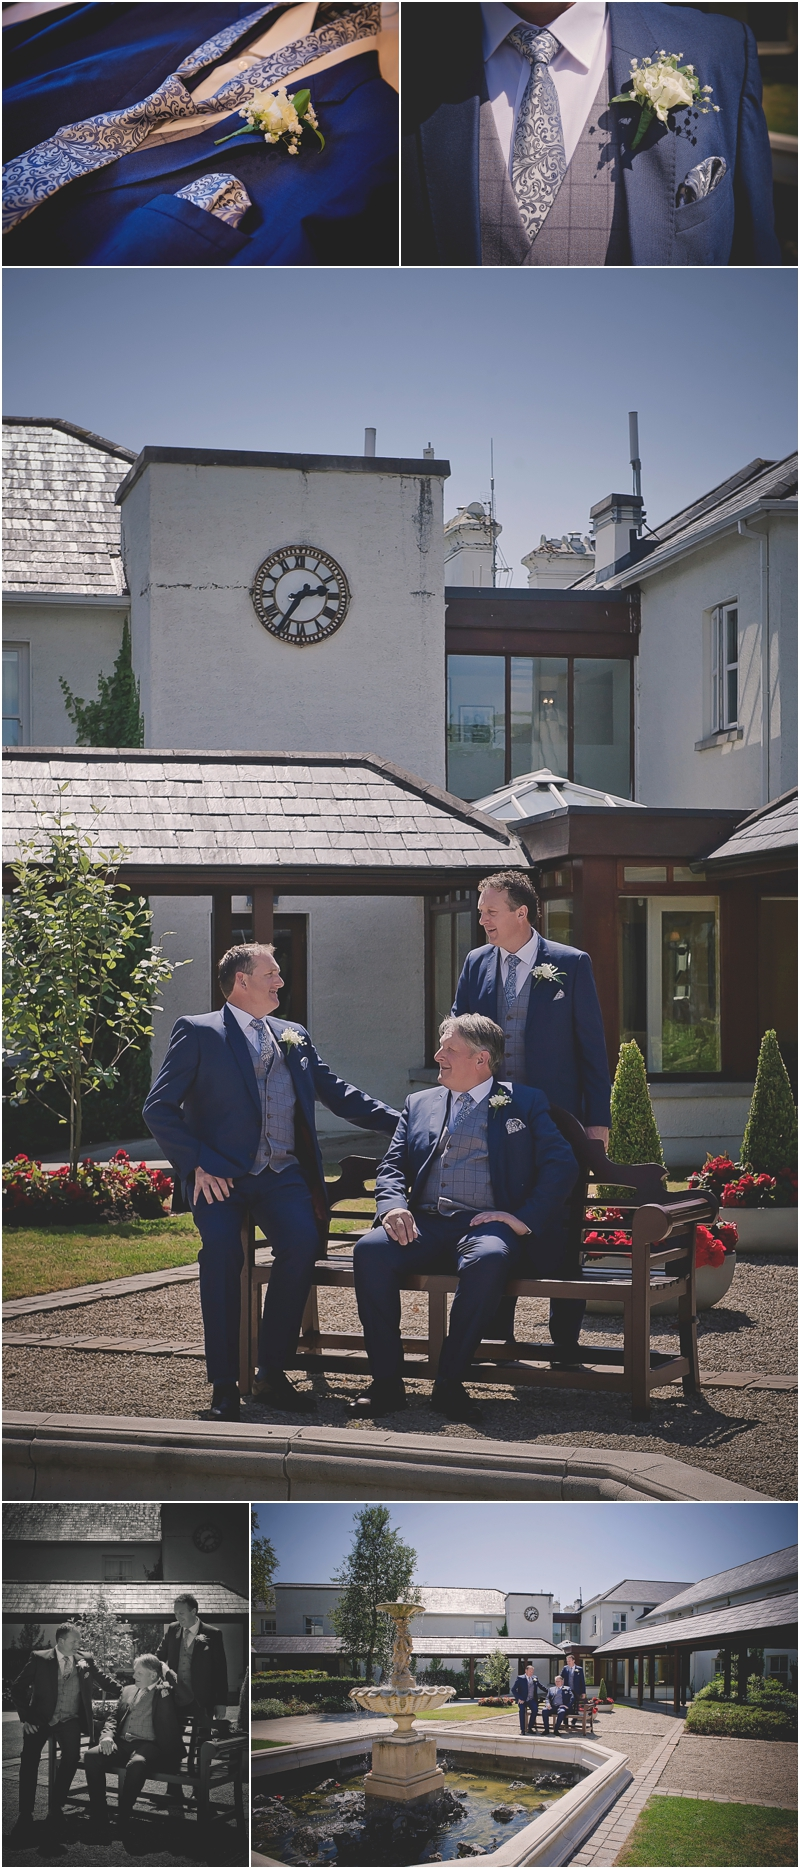 Groom and groomsmen in the courtyard at The Lodge at Ashford Castle